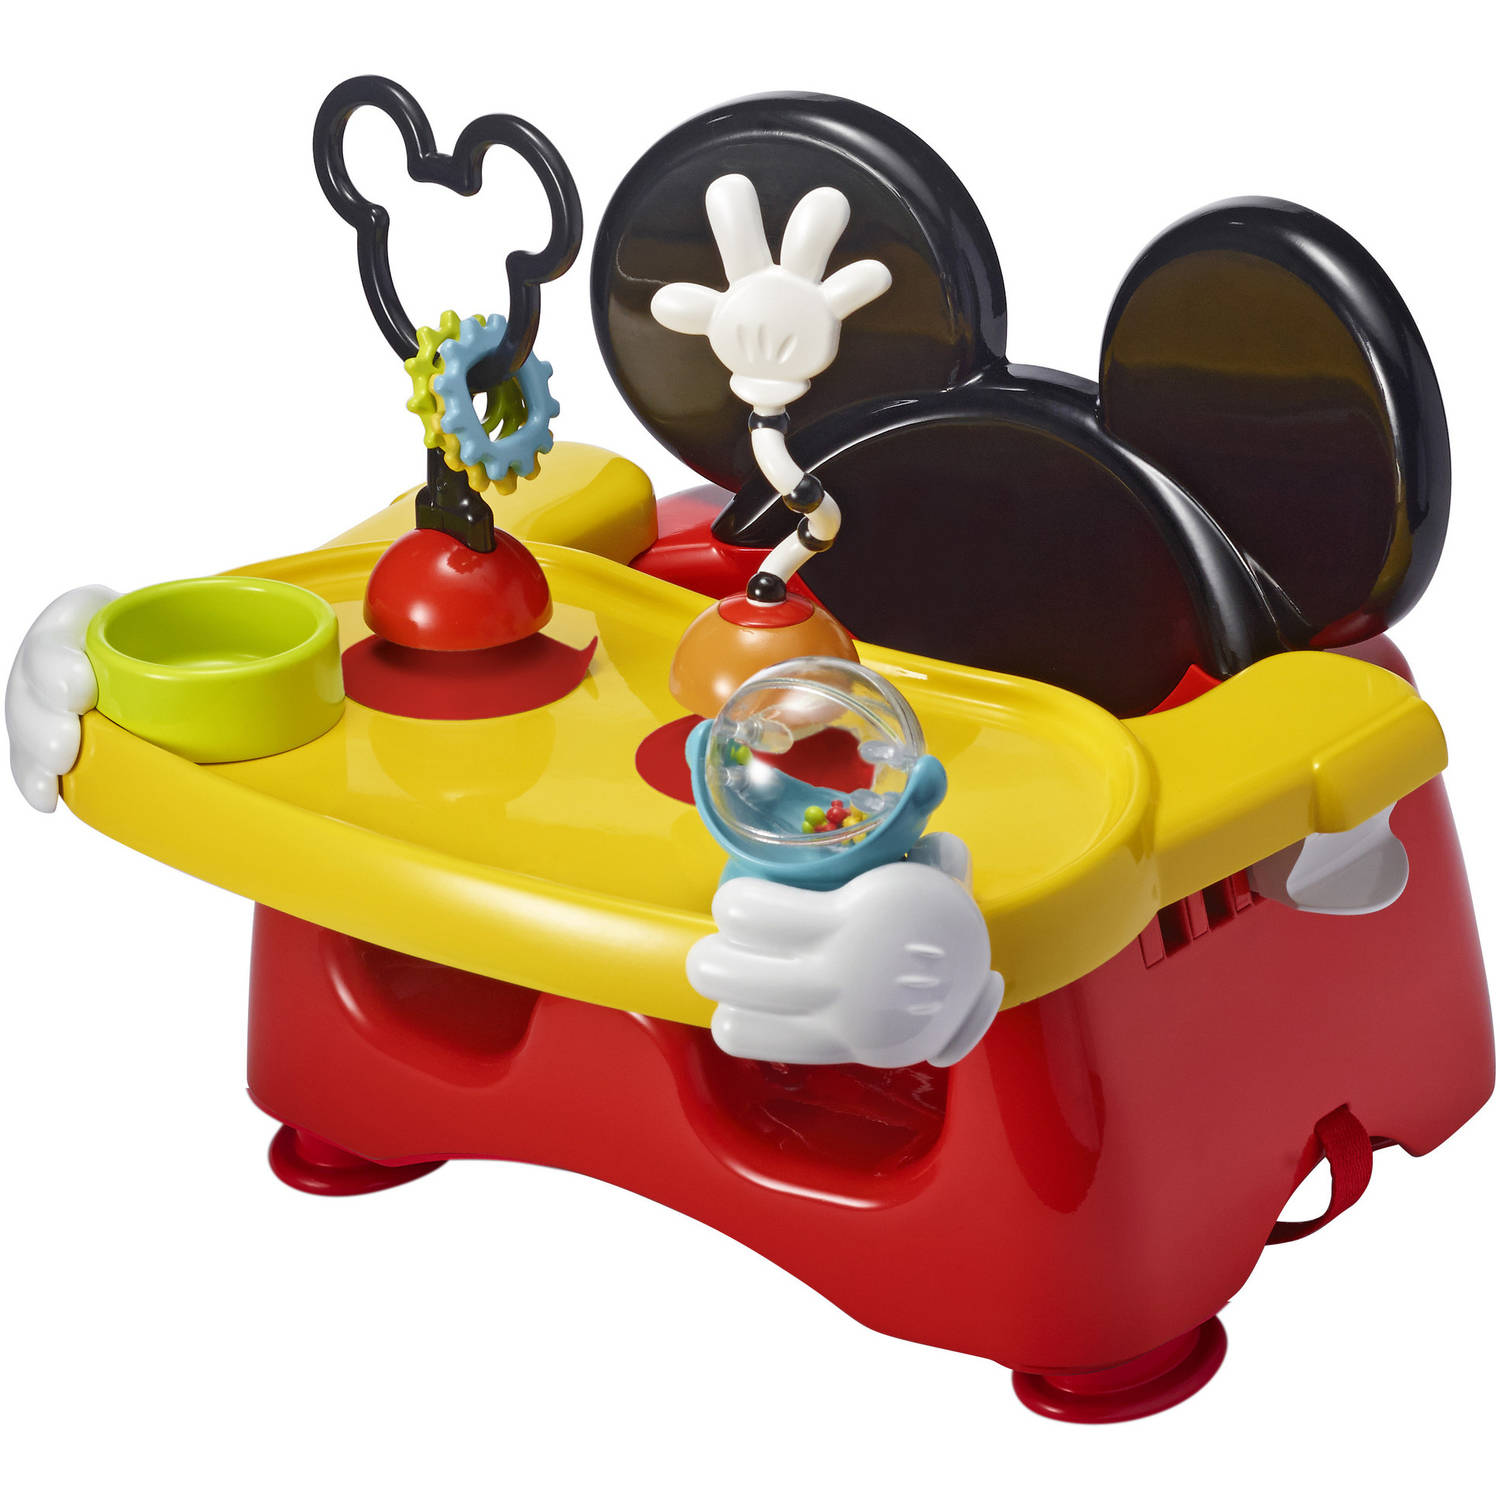 The First Years Disney Baby Mickey Mouse Helping Hands Feeding and Activity Seat by The First Years